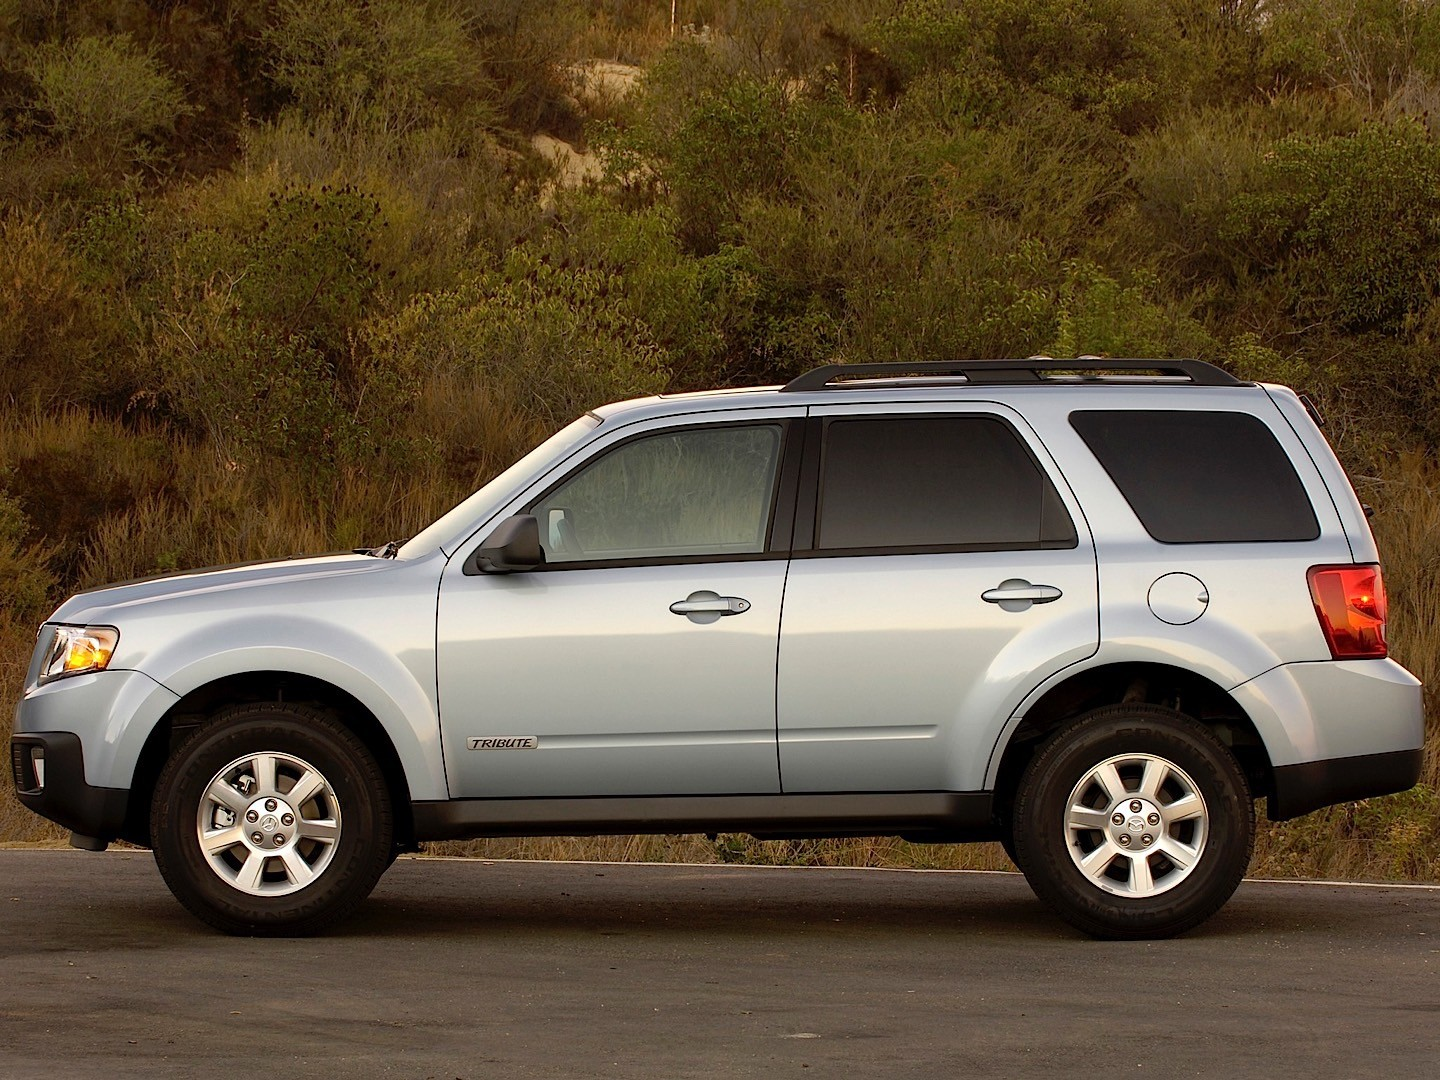 Mazda Tribute Specs Photos 2007 2008 Autoevolution Automatic Where Can I Download The Diagram